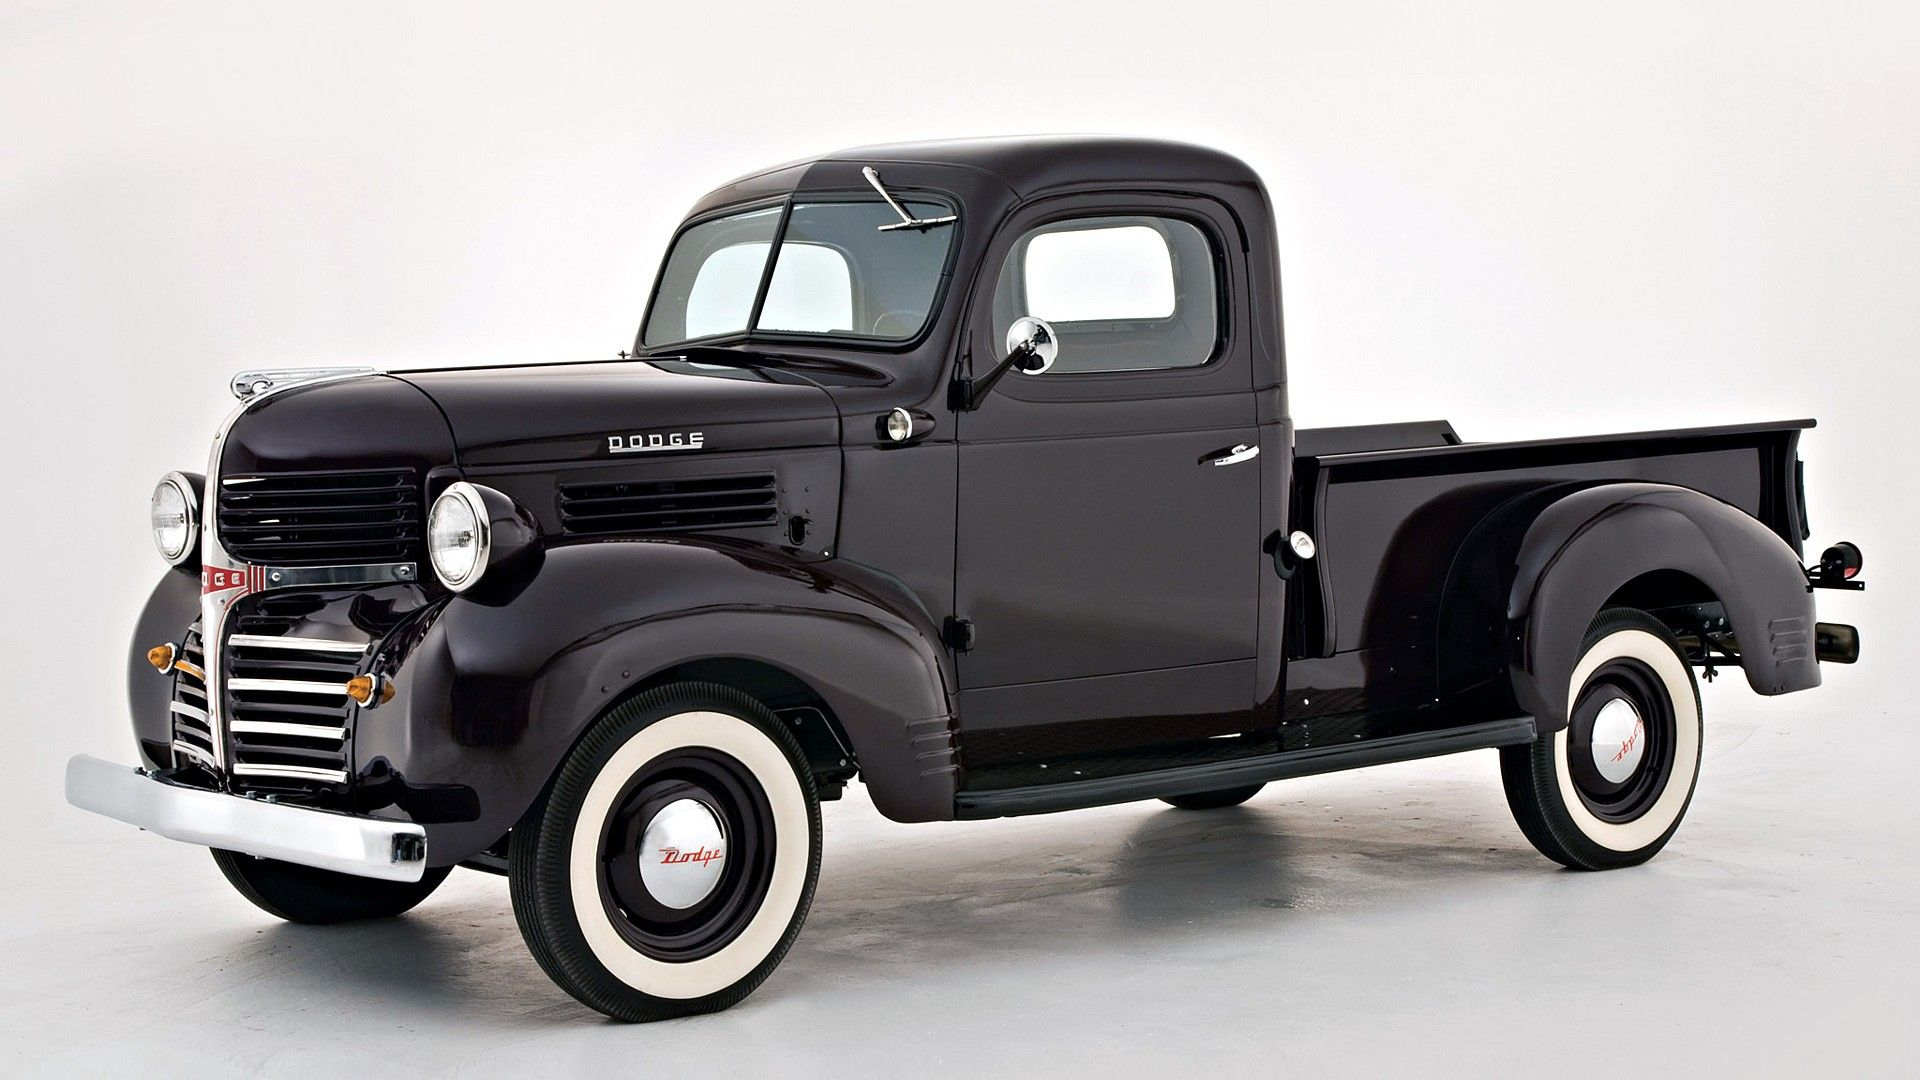 1941 dodge pickup desktop wallpaper 1920x1080